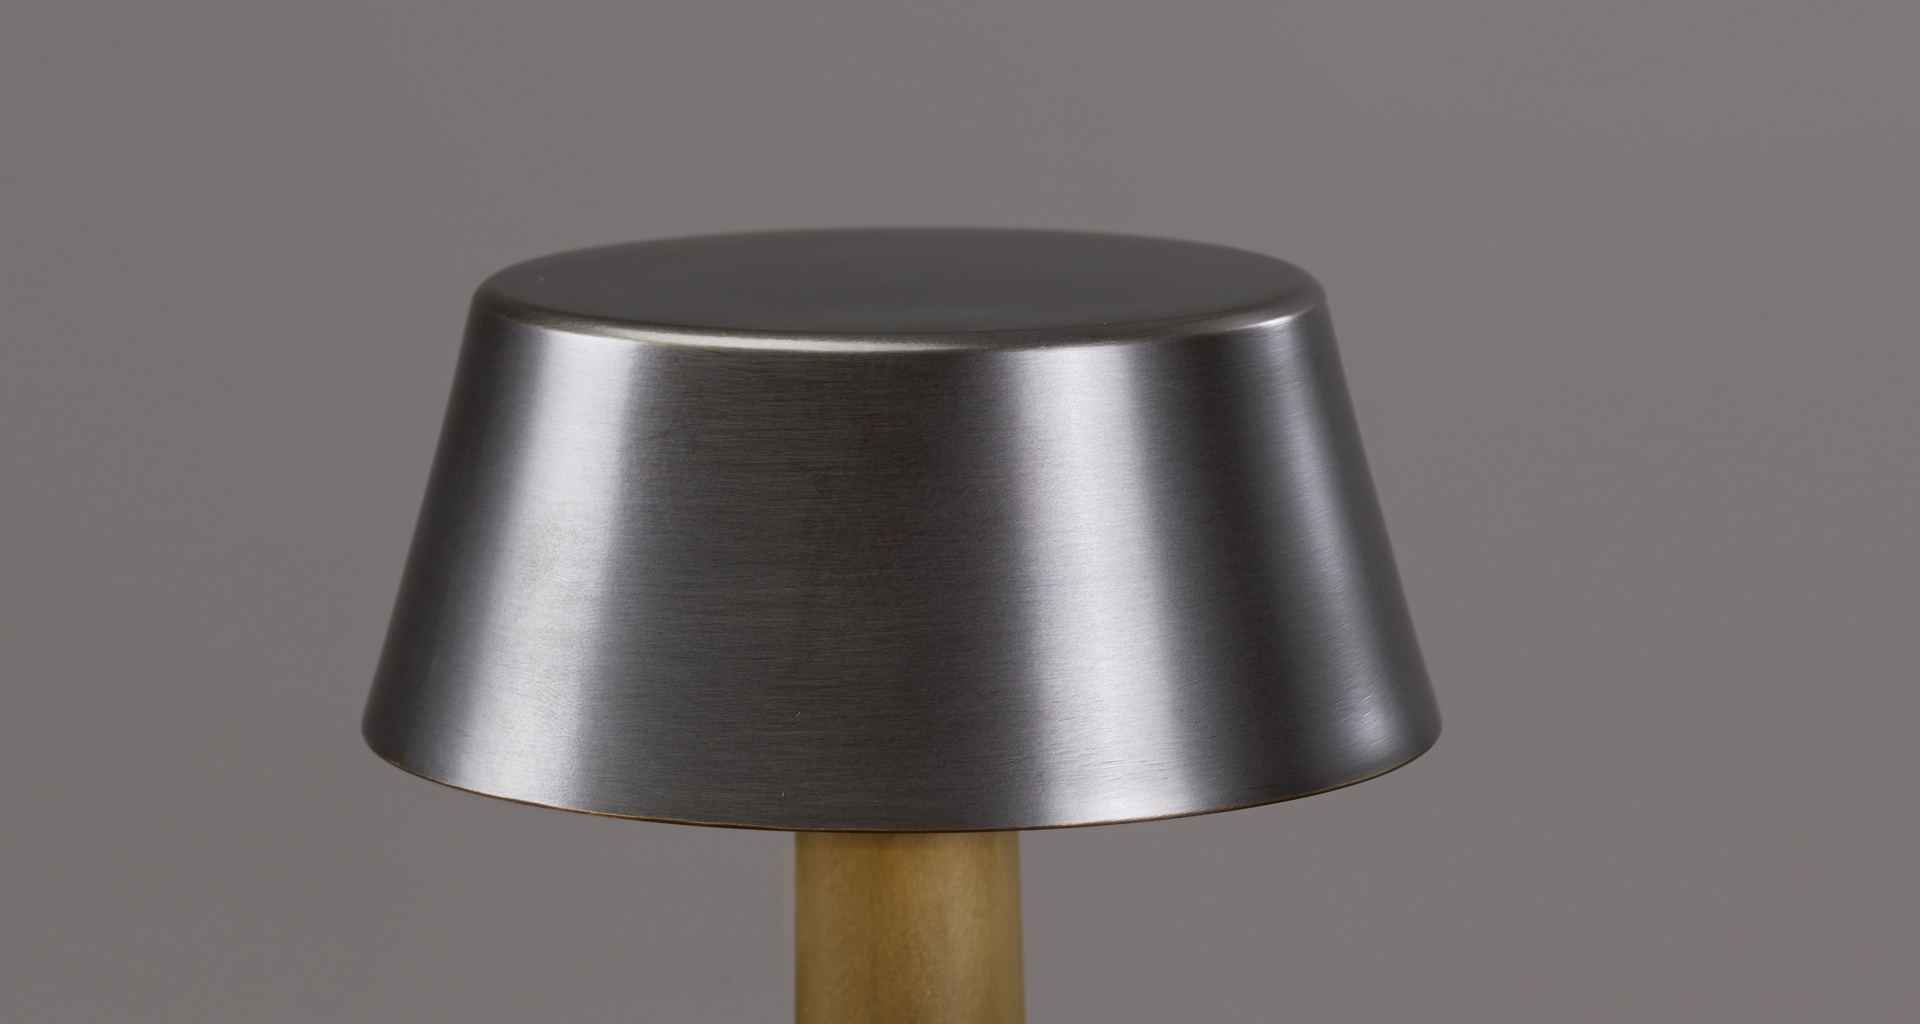 Detail of Fiammetta, a portable table LED lamp with bronze structure and touch switch, from Promemoria's catalogue | Promemoria